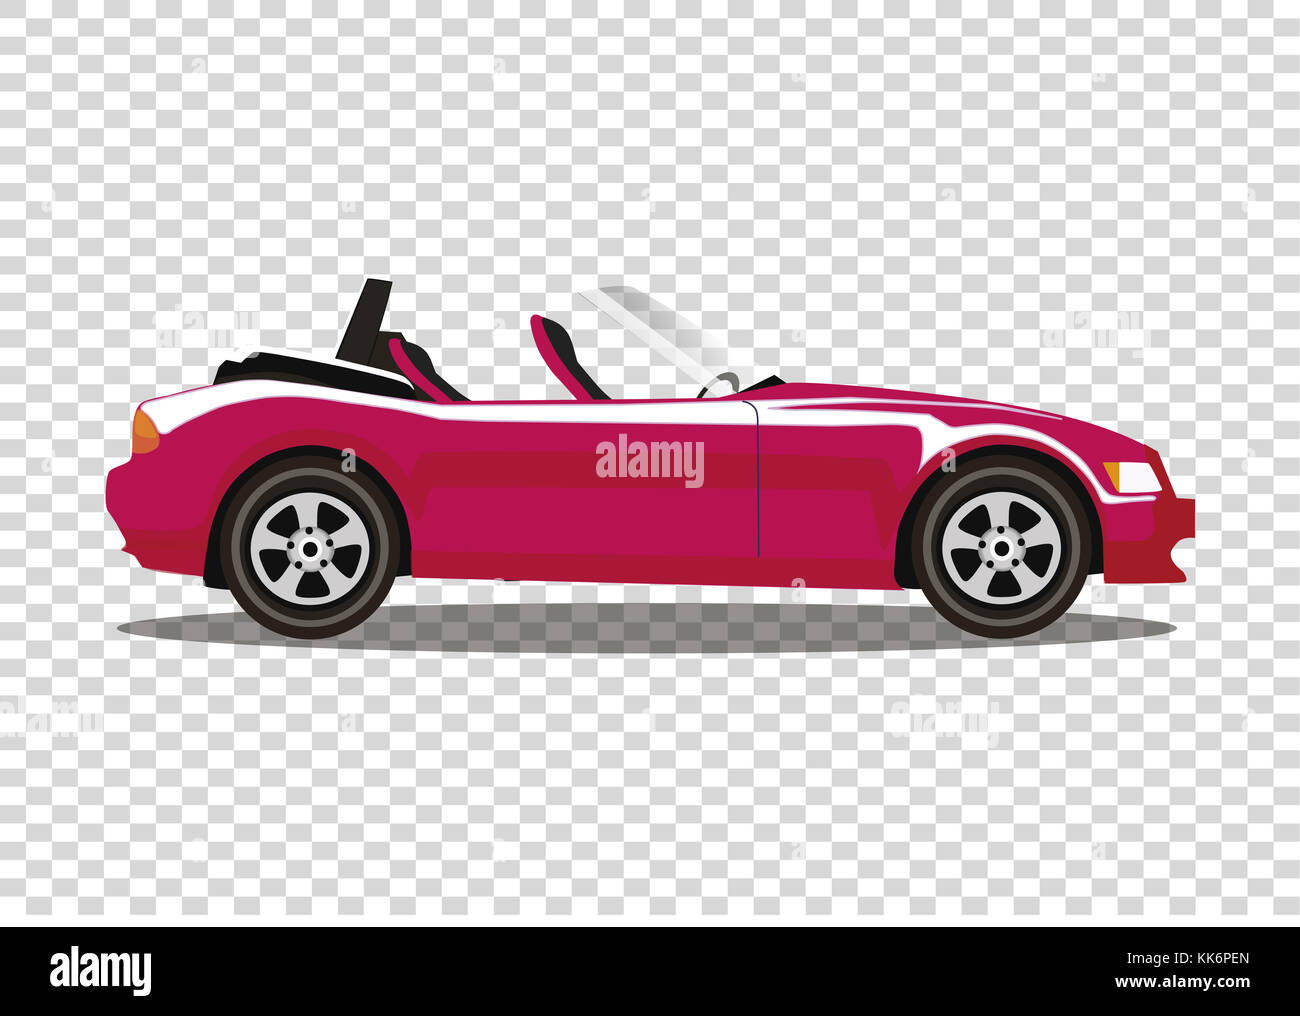 Red Modern Cartoon Colored Cabriolet Car Isolated On